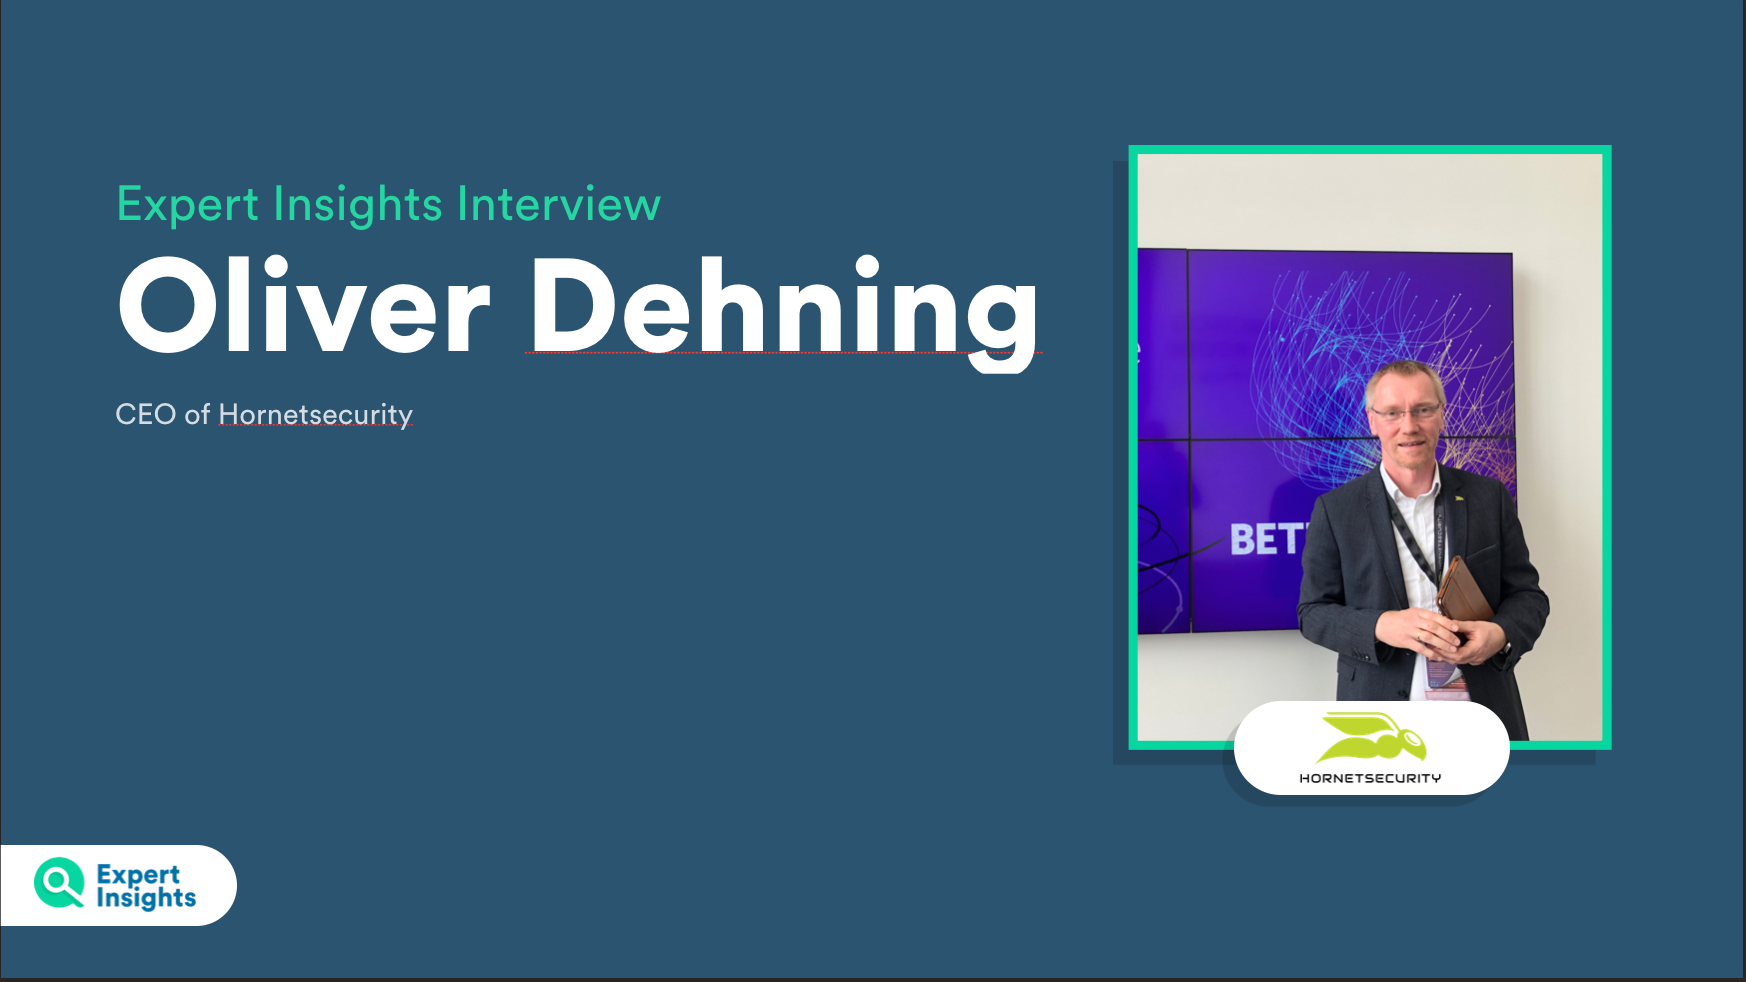 Oliver Dehning Hornetsecurity interview - expert insights